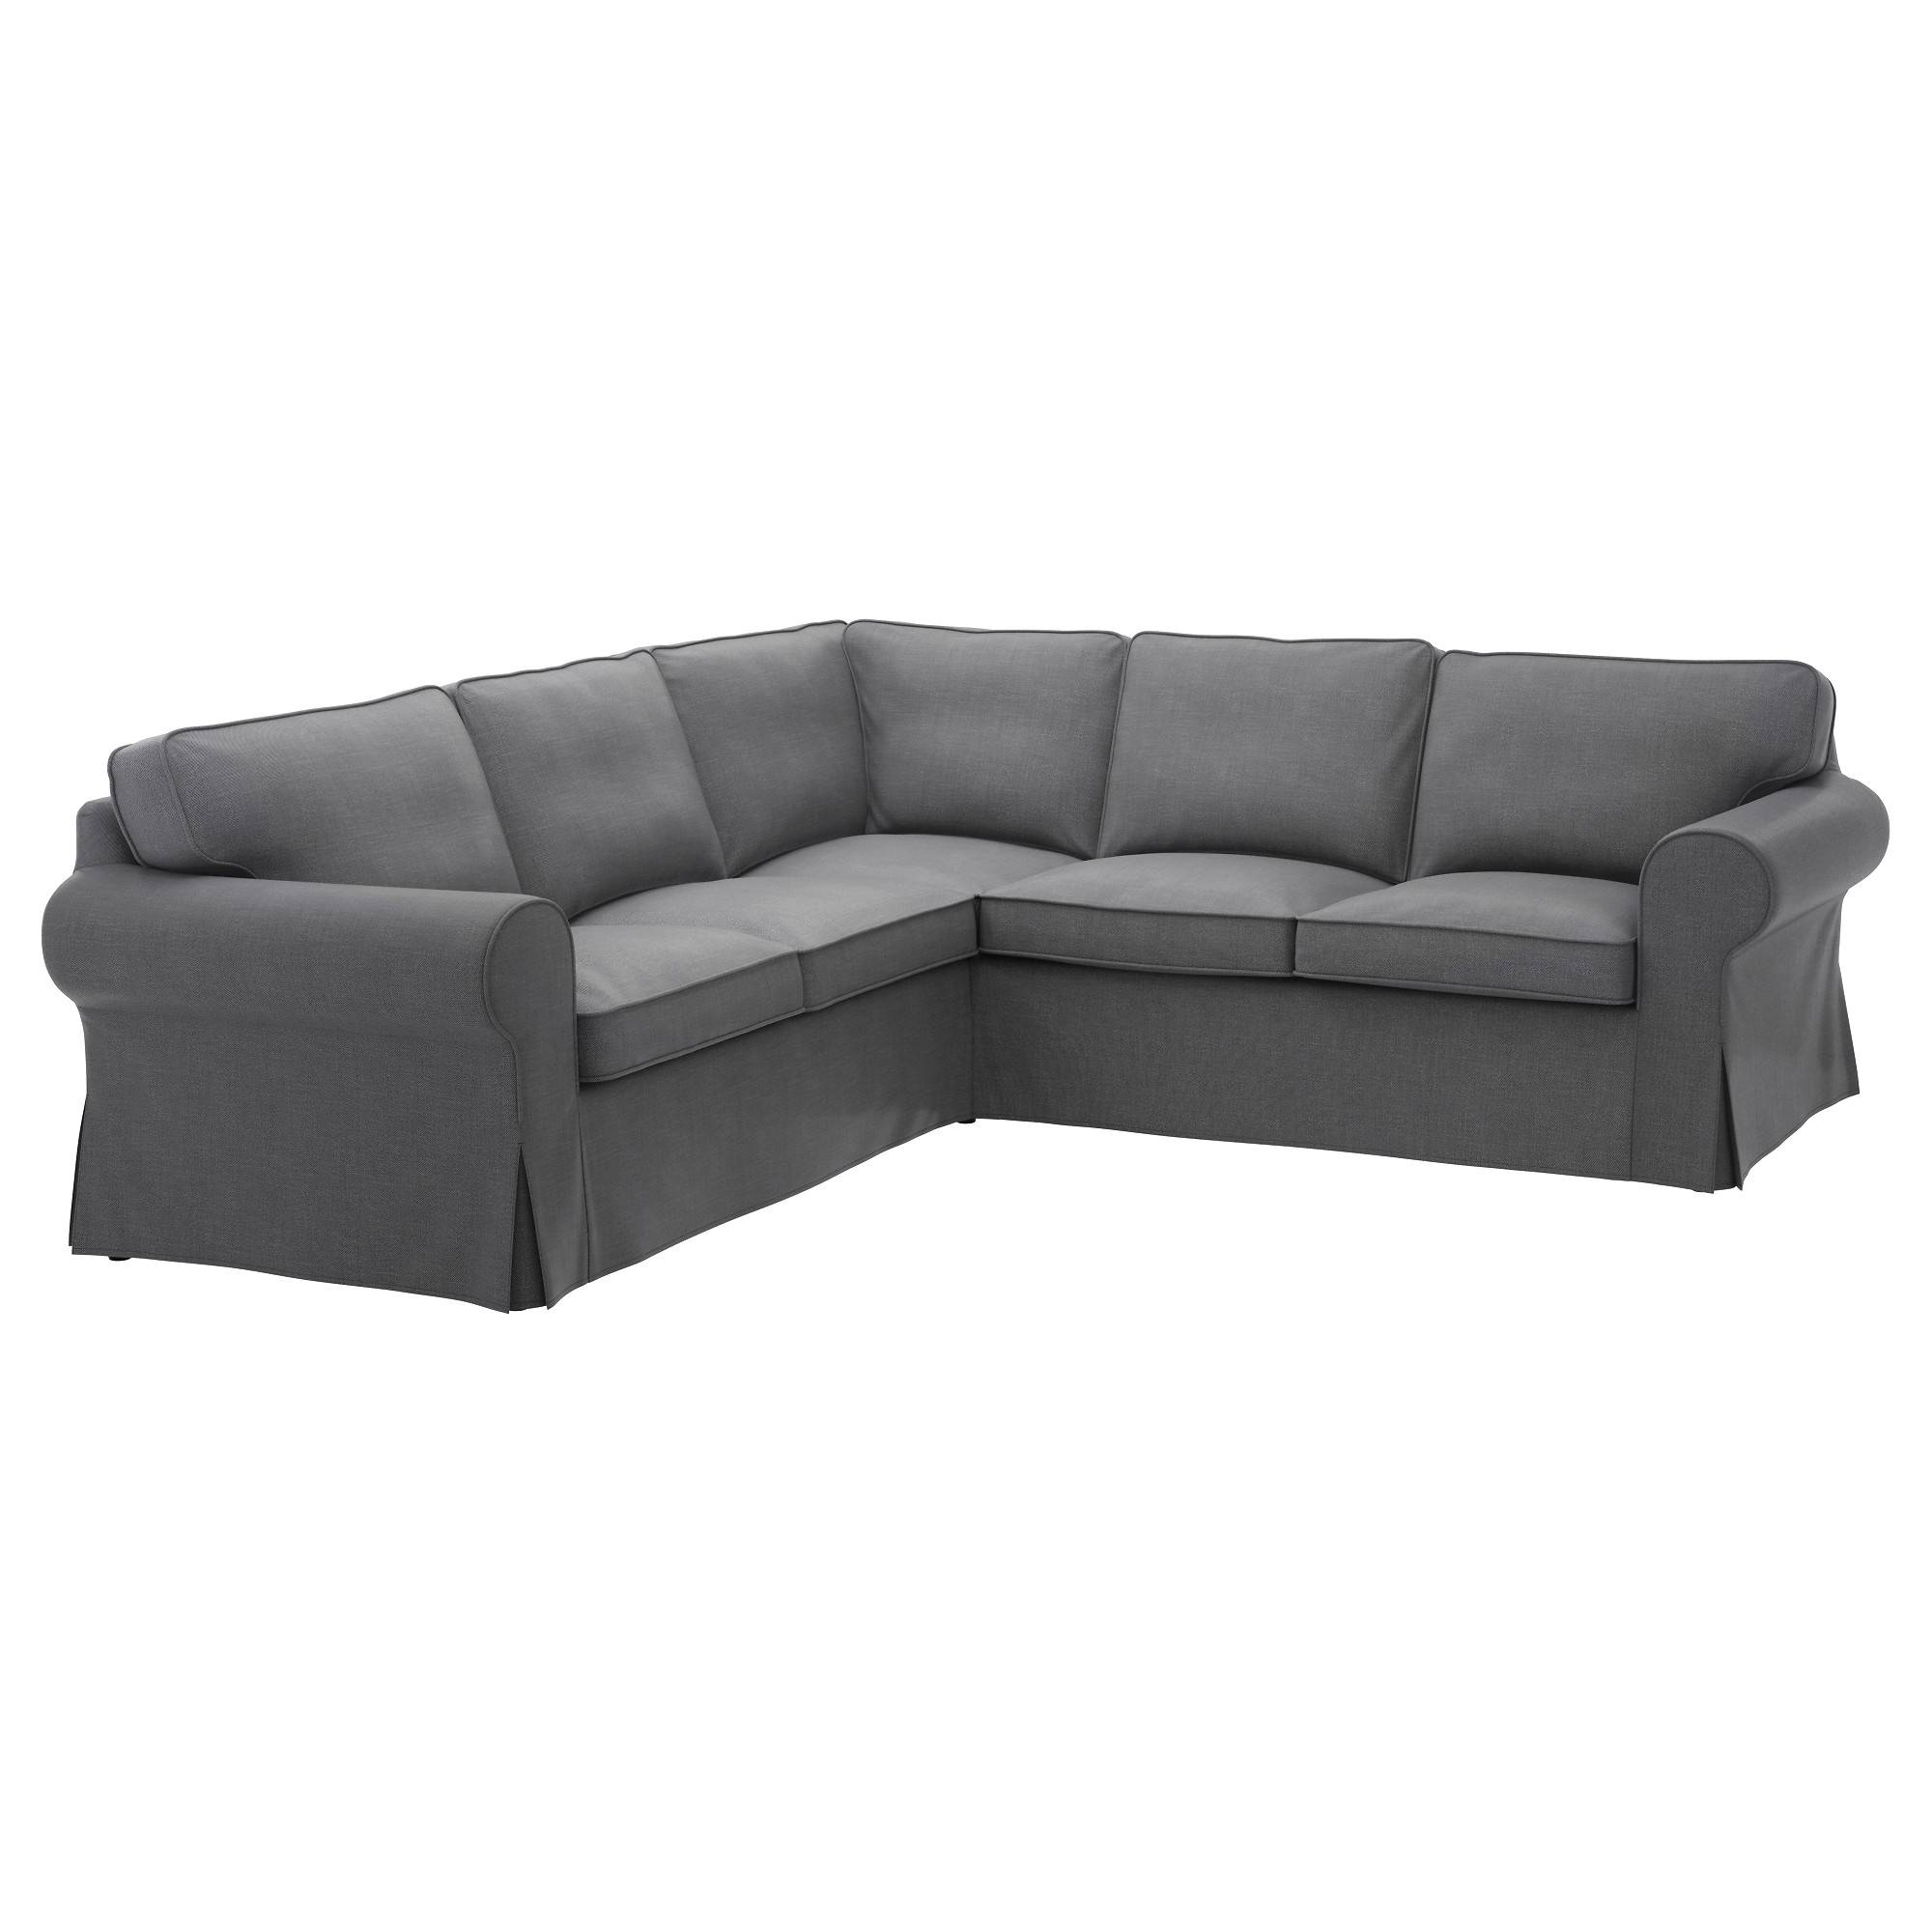 Ektorp Sectional, 4-Seat Corner - Lofallet Beige - Ikea inside 2 Seat Sectional Sofas (Image 5 of 30)